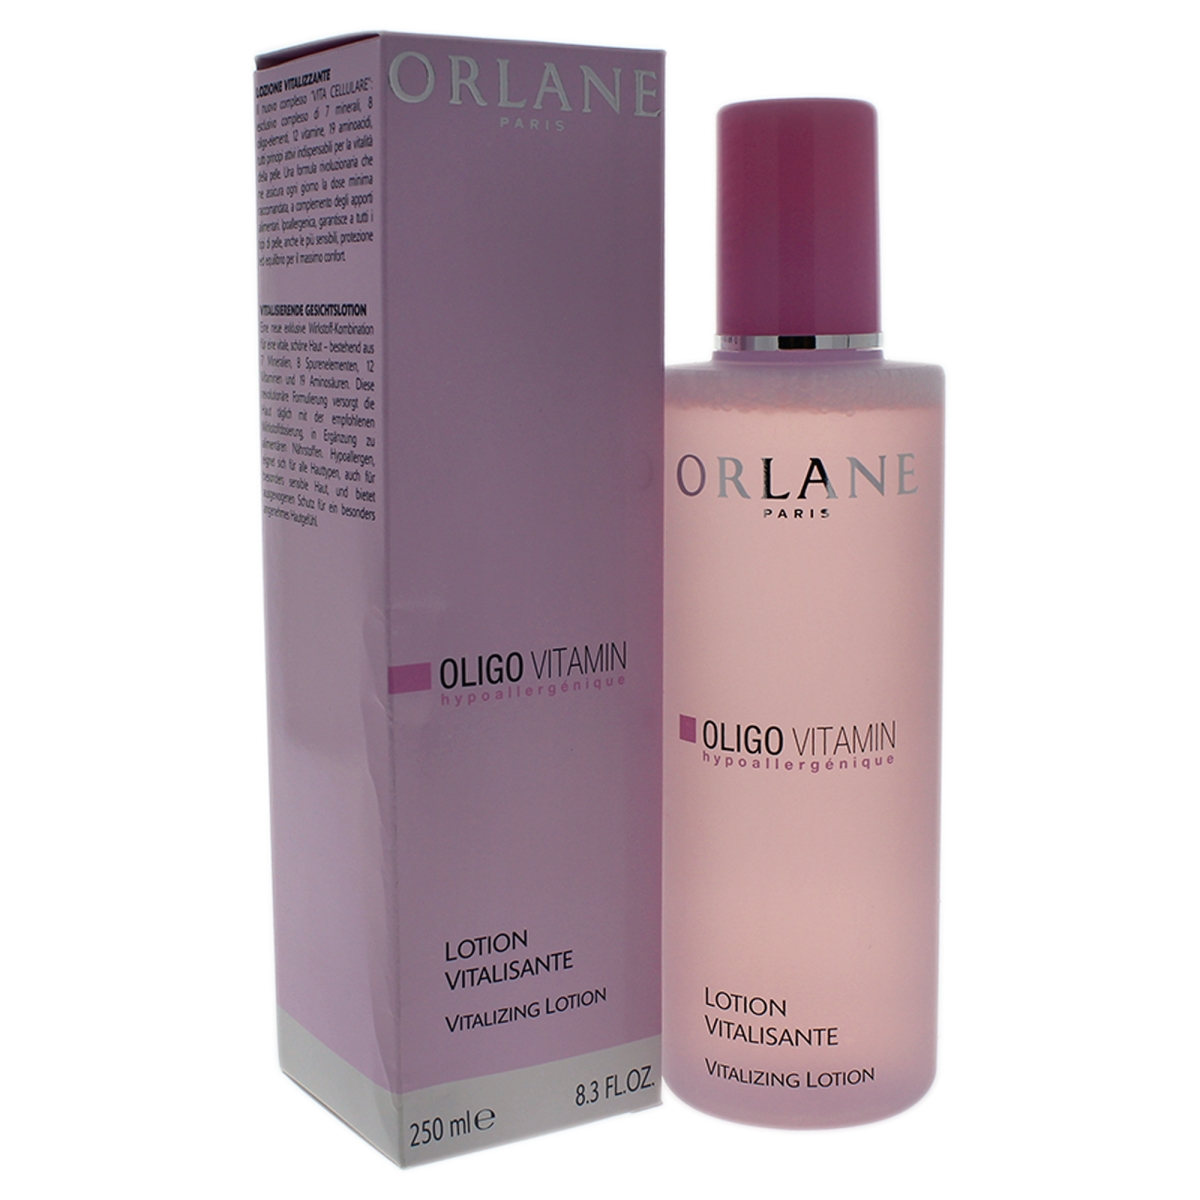 Orlane W-SC-3096 8.3 oz Oligo Vitamin Vitalizing Lotion for Women